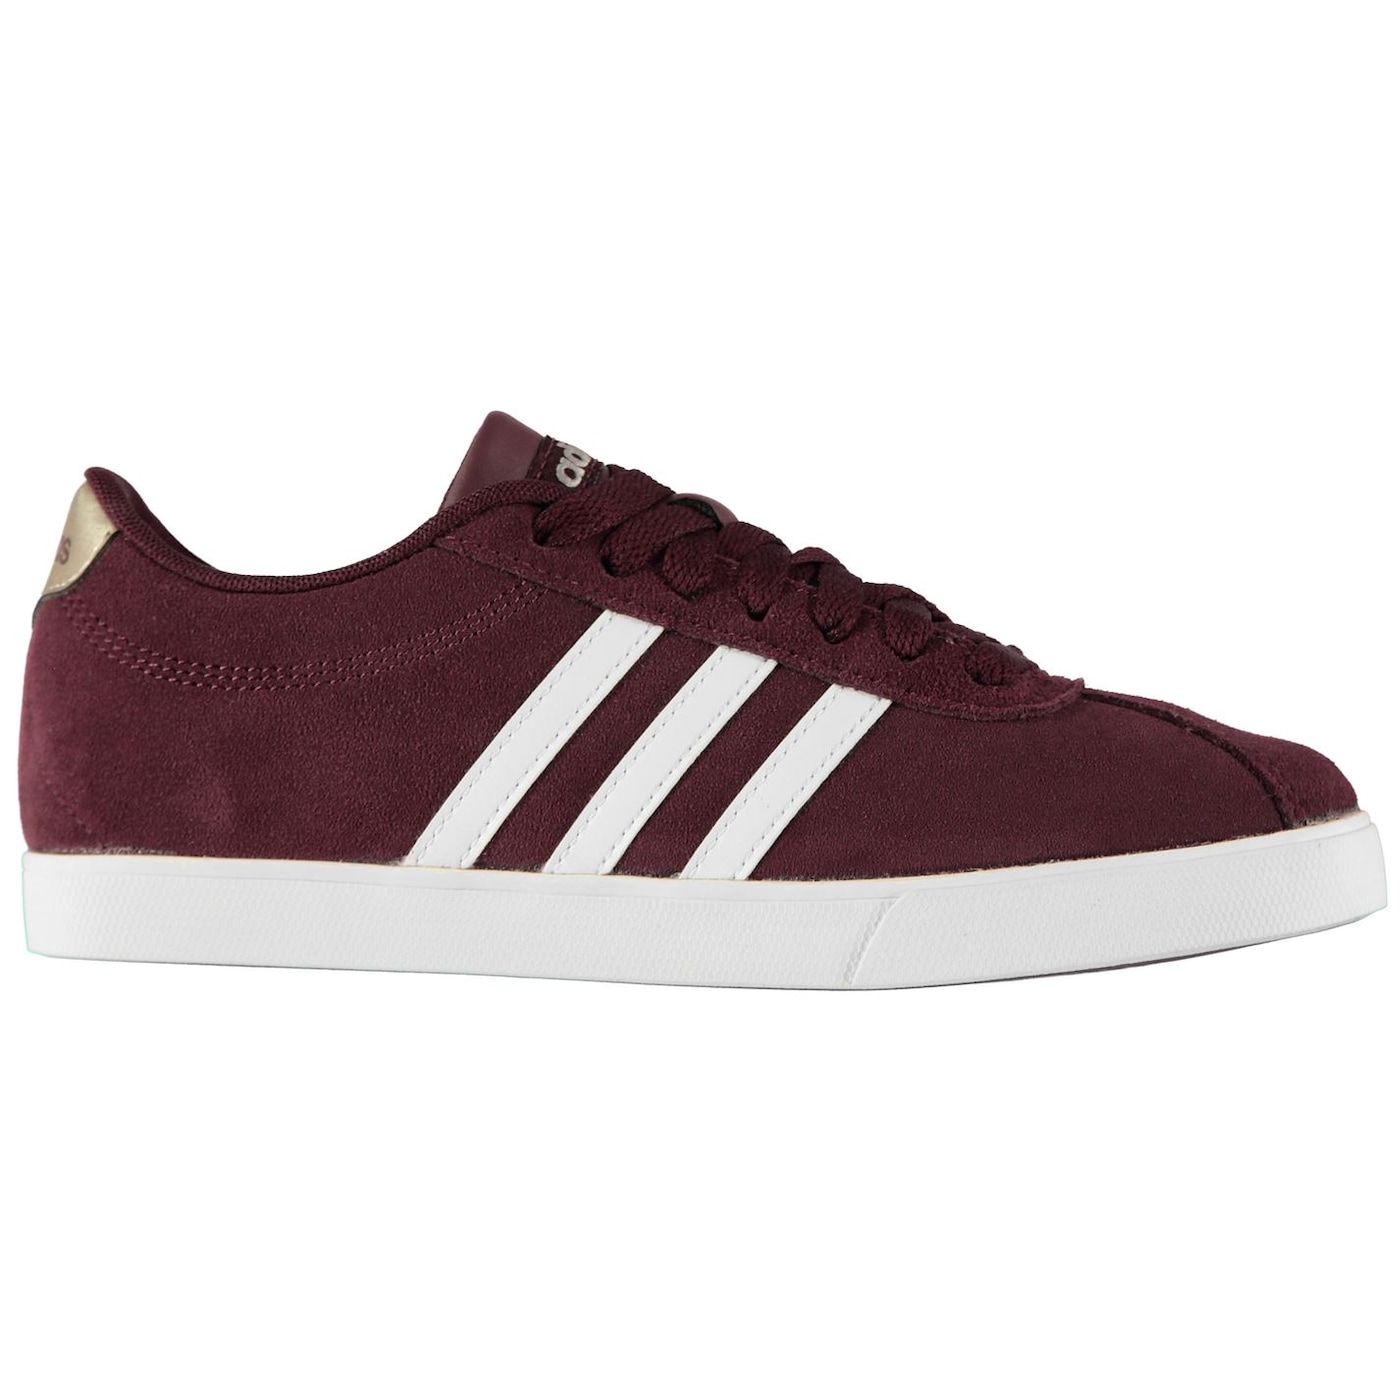 Adidas Court Set Suede Ladies Trainers